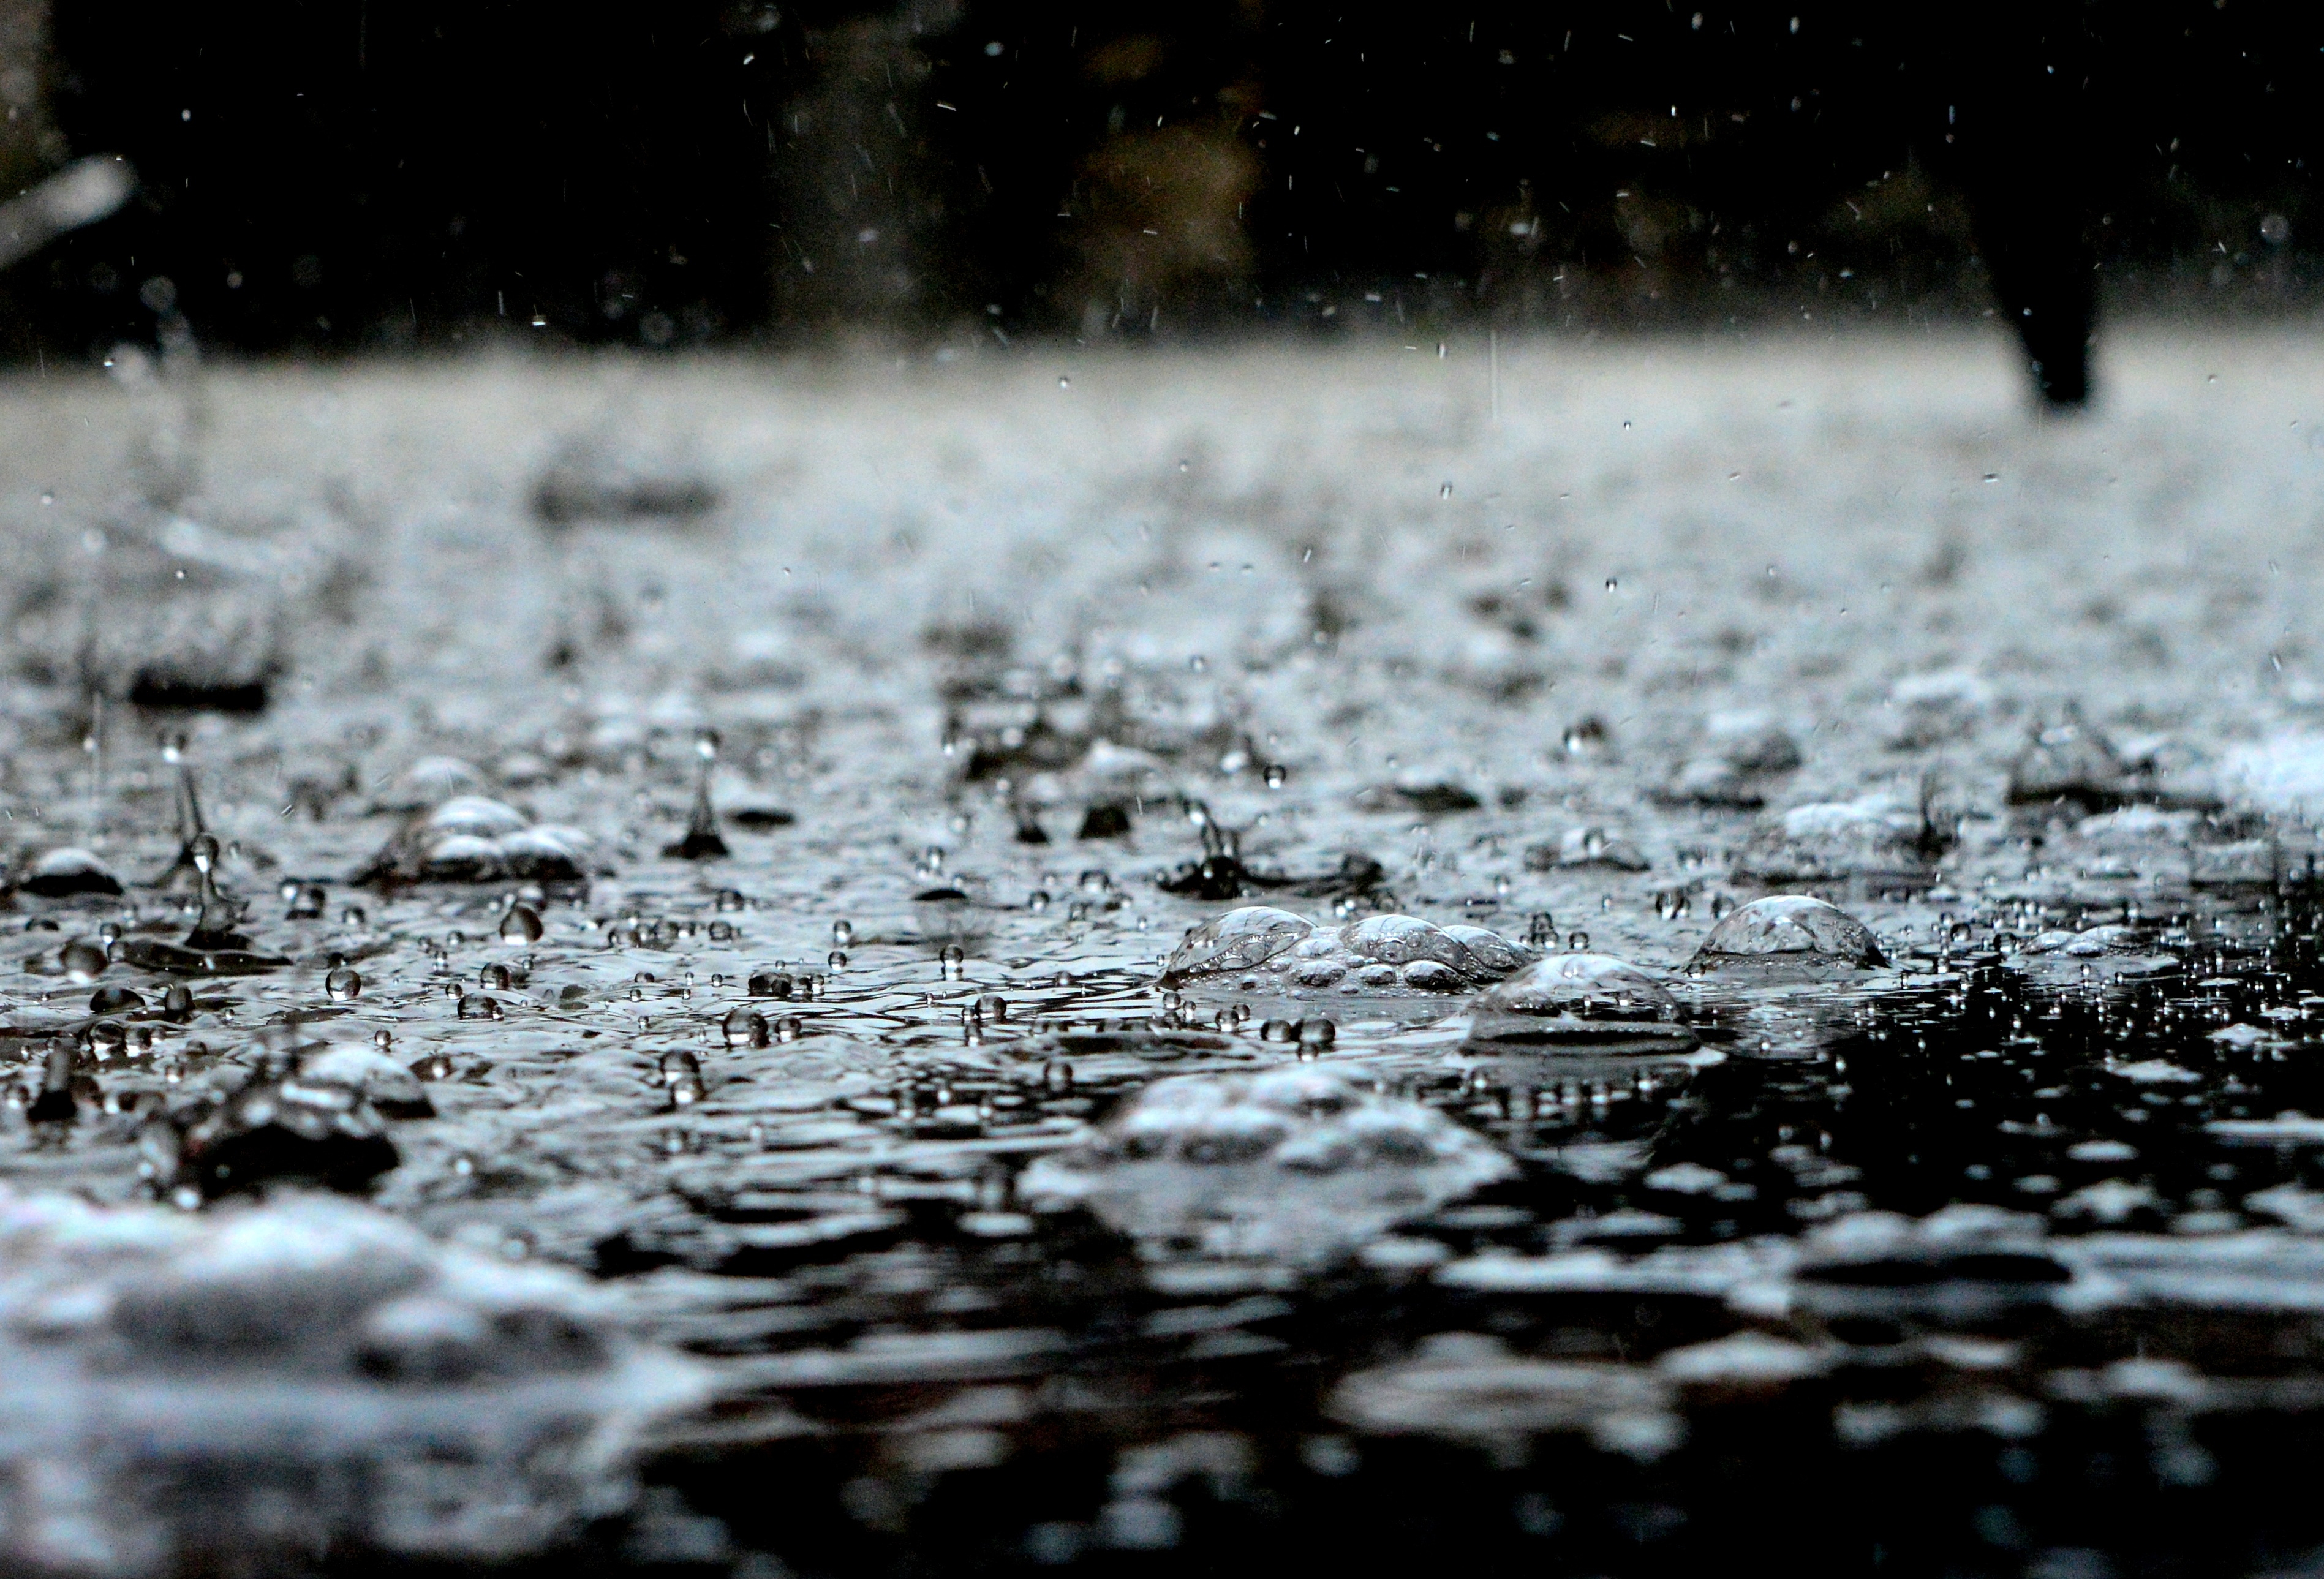 For damage caused by rain, call 1.877.PDAVIS.1